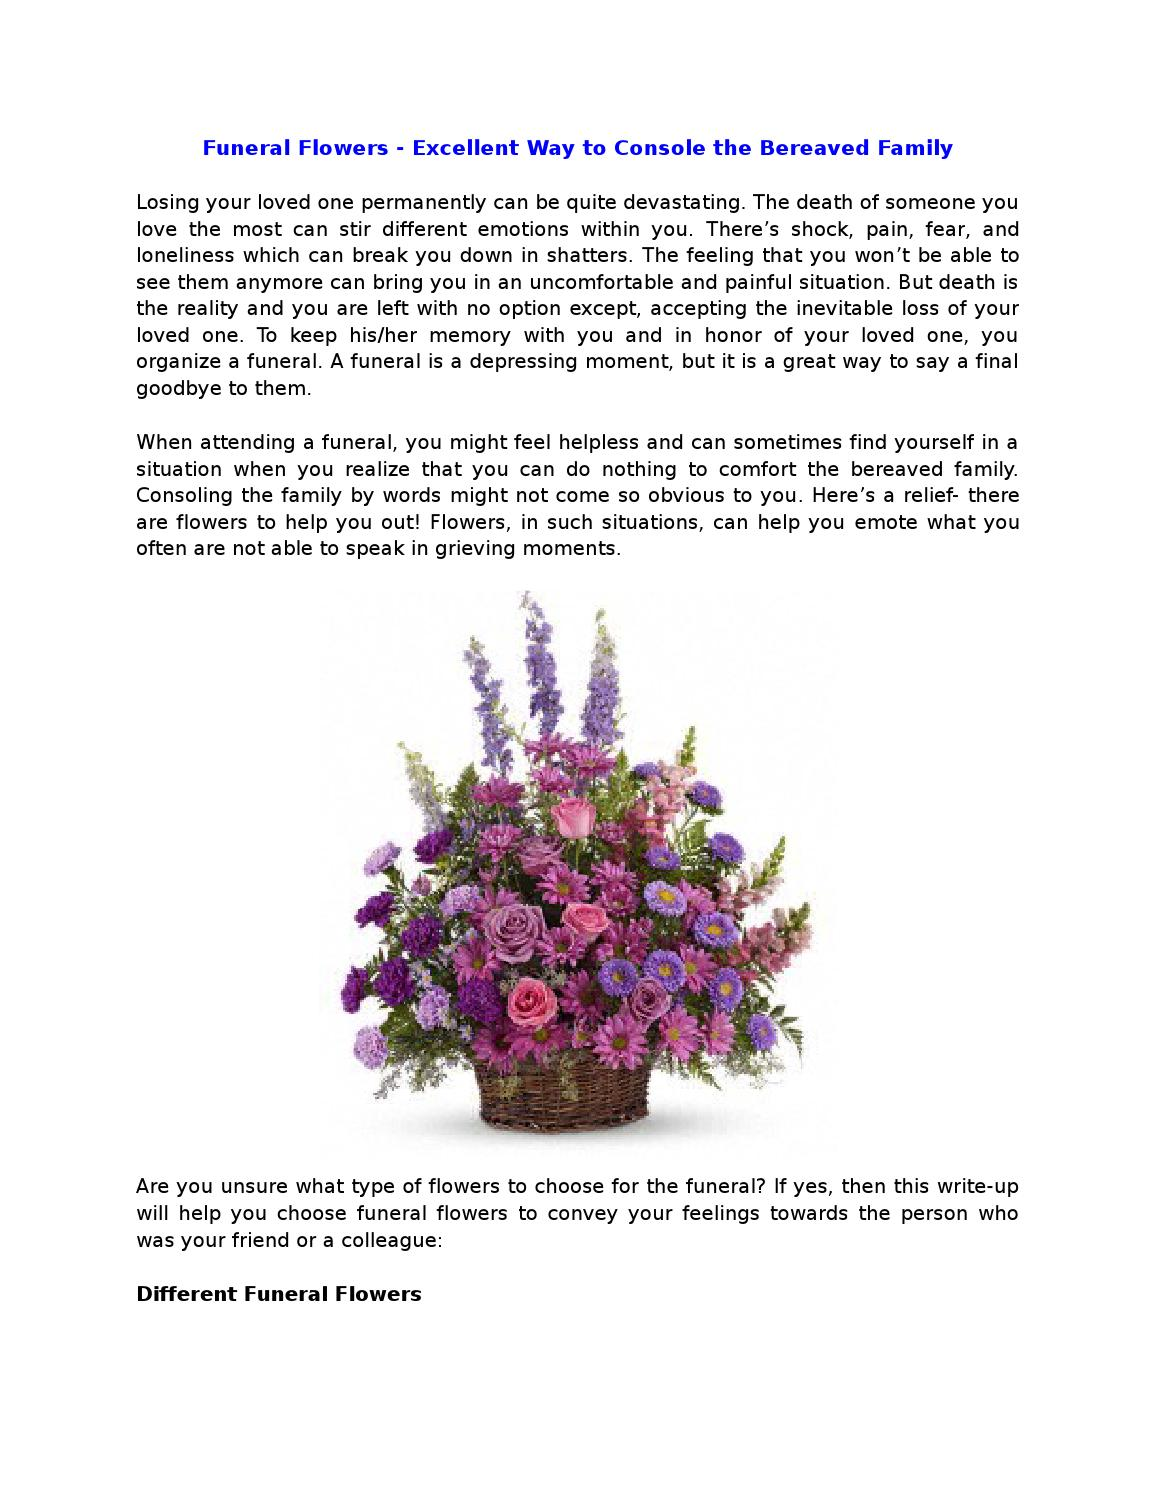 Funeral flowers excellent way to console the bereaved family by funeral flowers excellent way to console the bereaved family by devin mark issuu izmirmasajfo